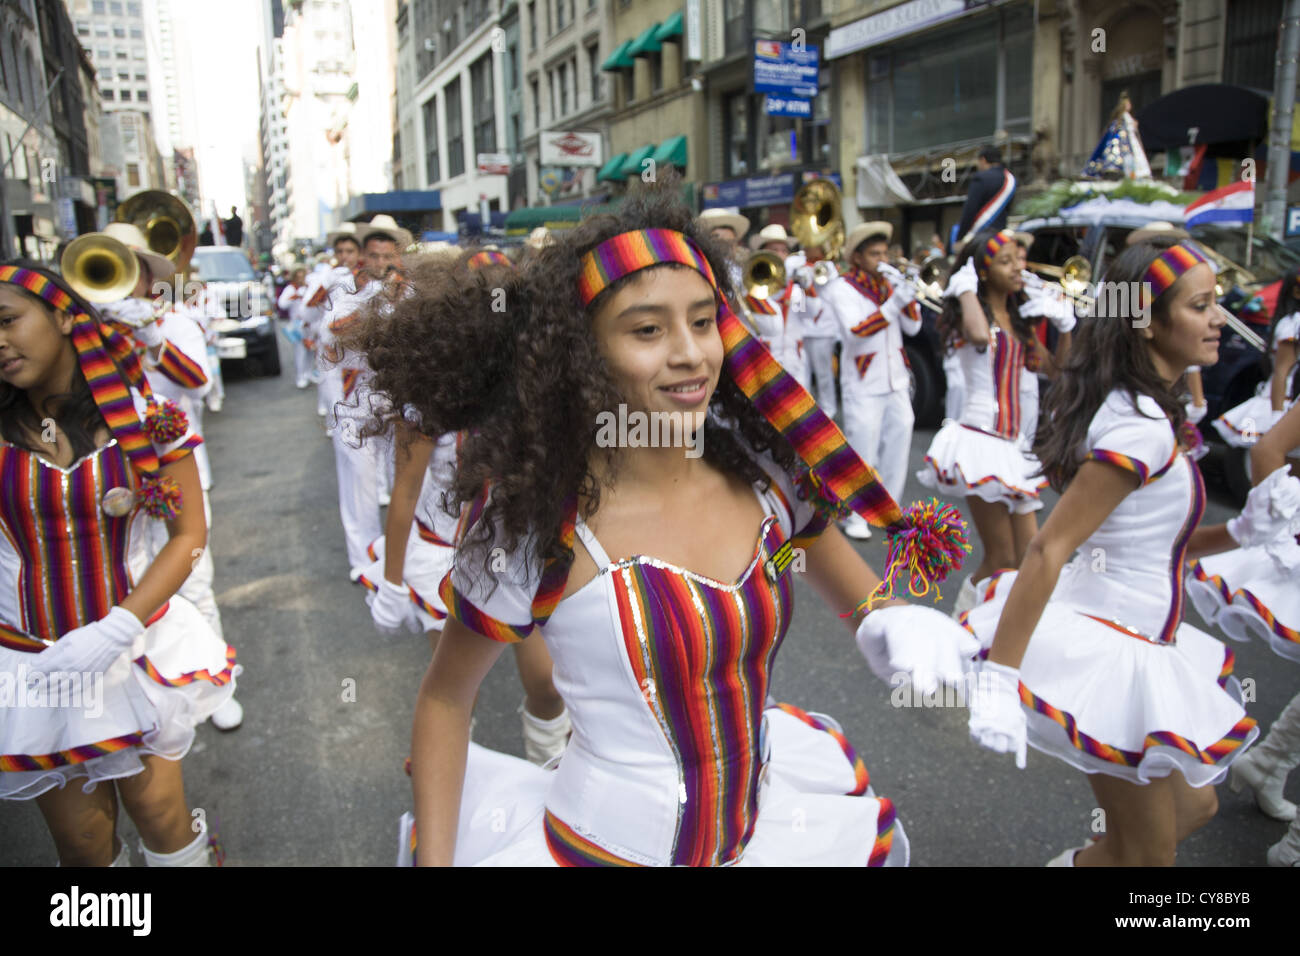 Hispanic Day Parade, New York City. Guatemala was well represented with dancers and musicians at the parade. - Stock Image